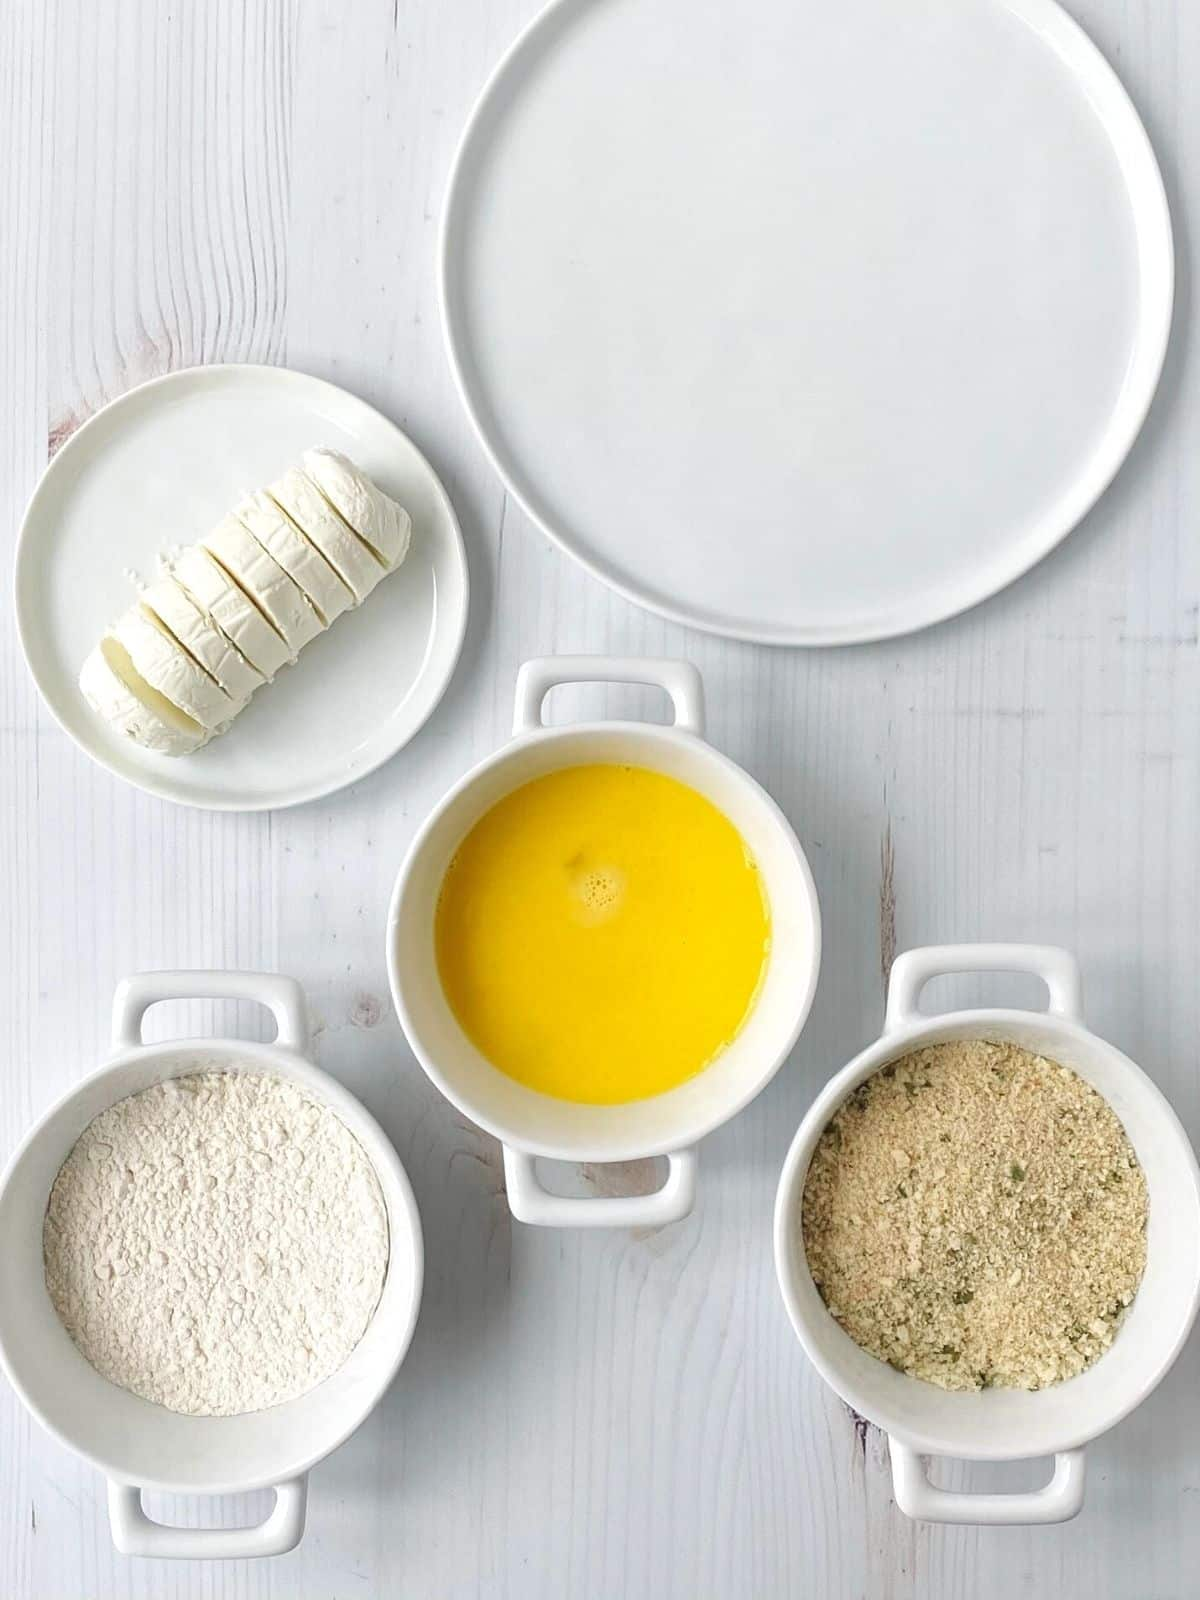 goat cheese and flour, egg, and breadcrumbs for breading the cheese